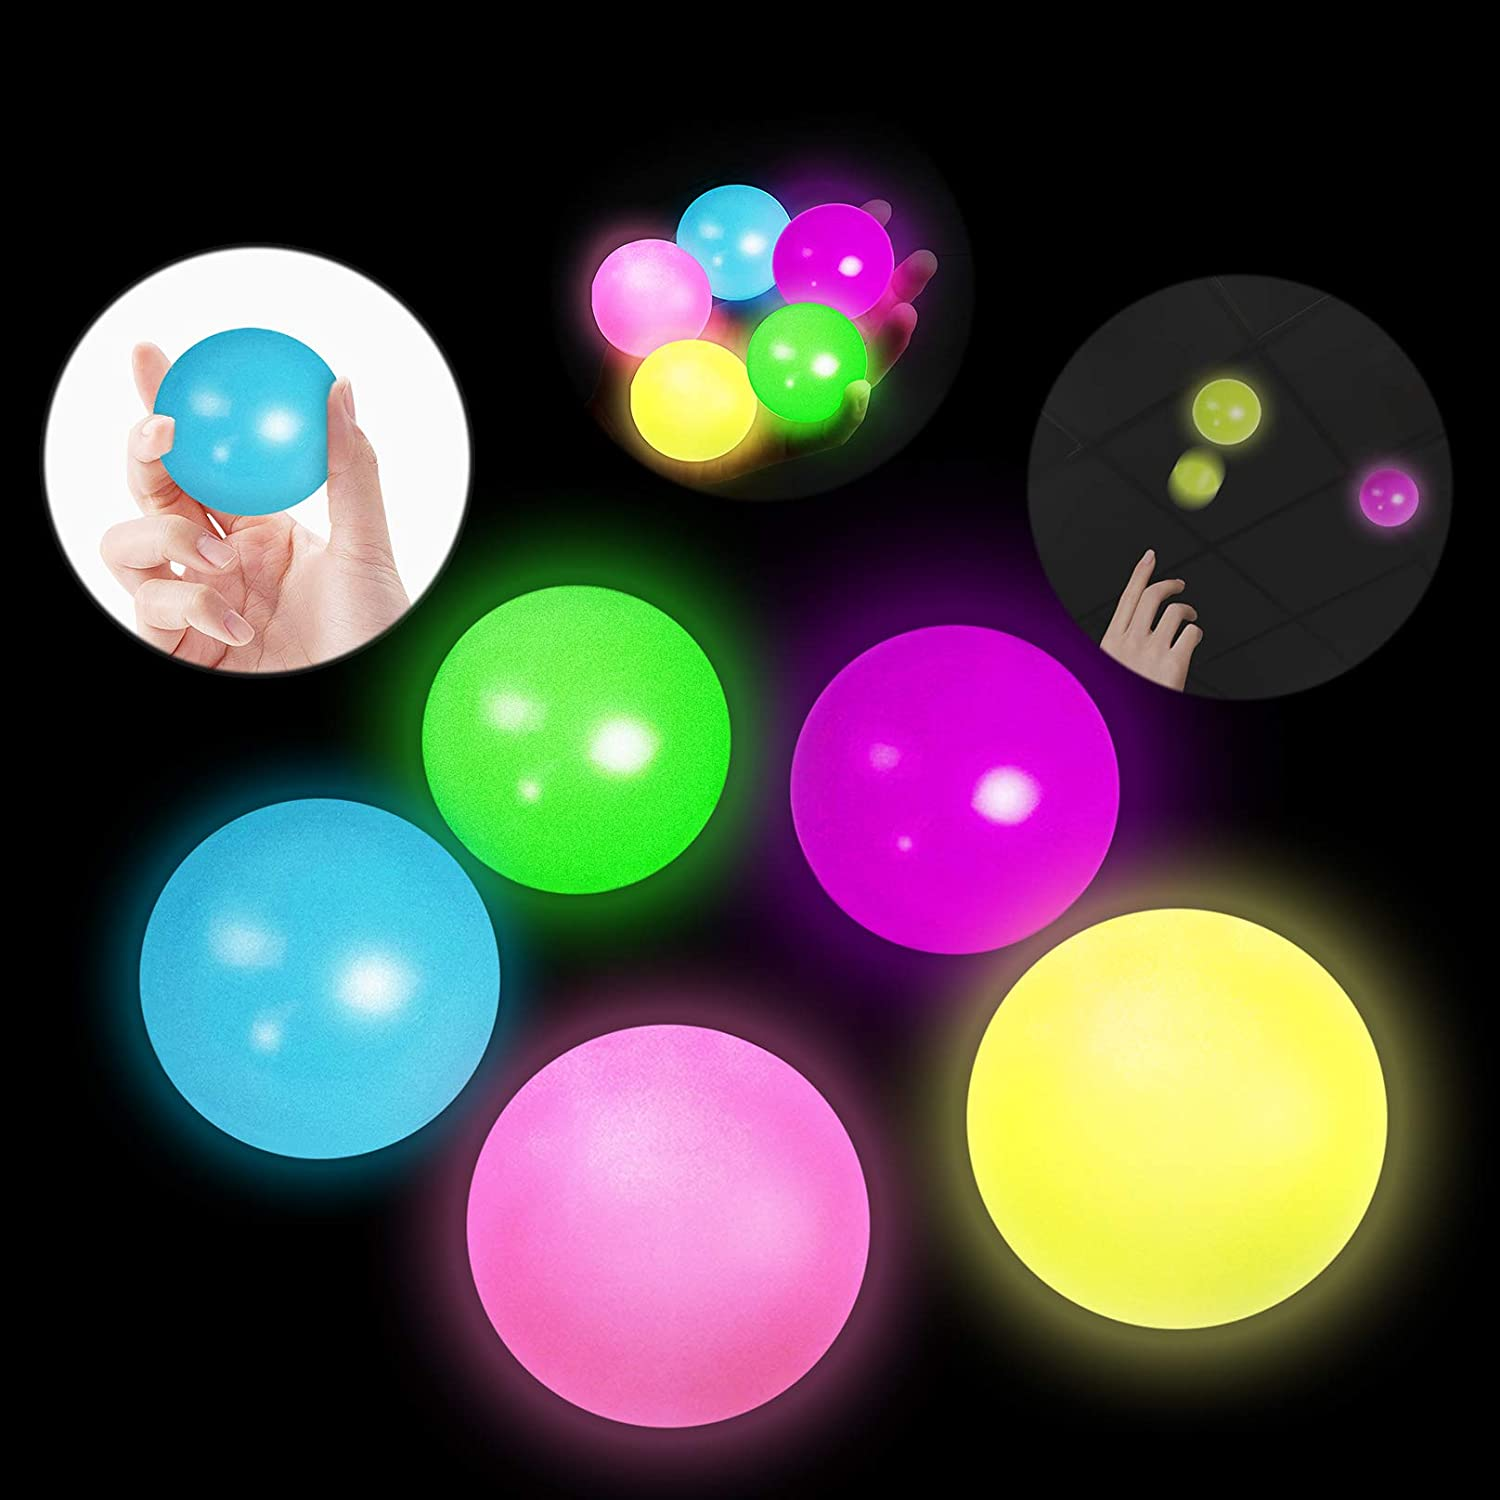 Hot Max 53% OFF Bee Gobbles New item Sticky Balls Lumi Ceiling Ball Wall